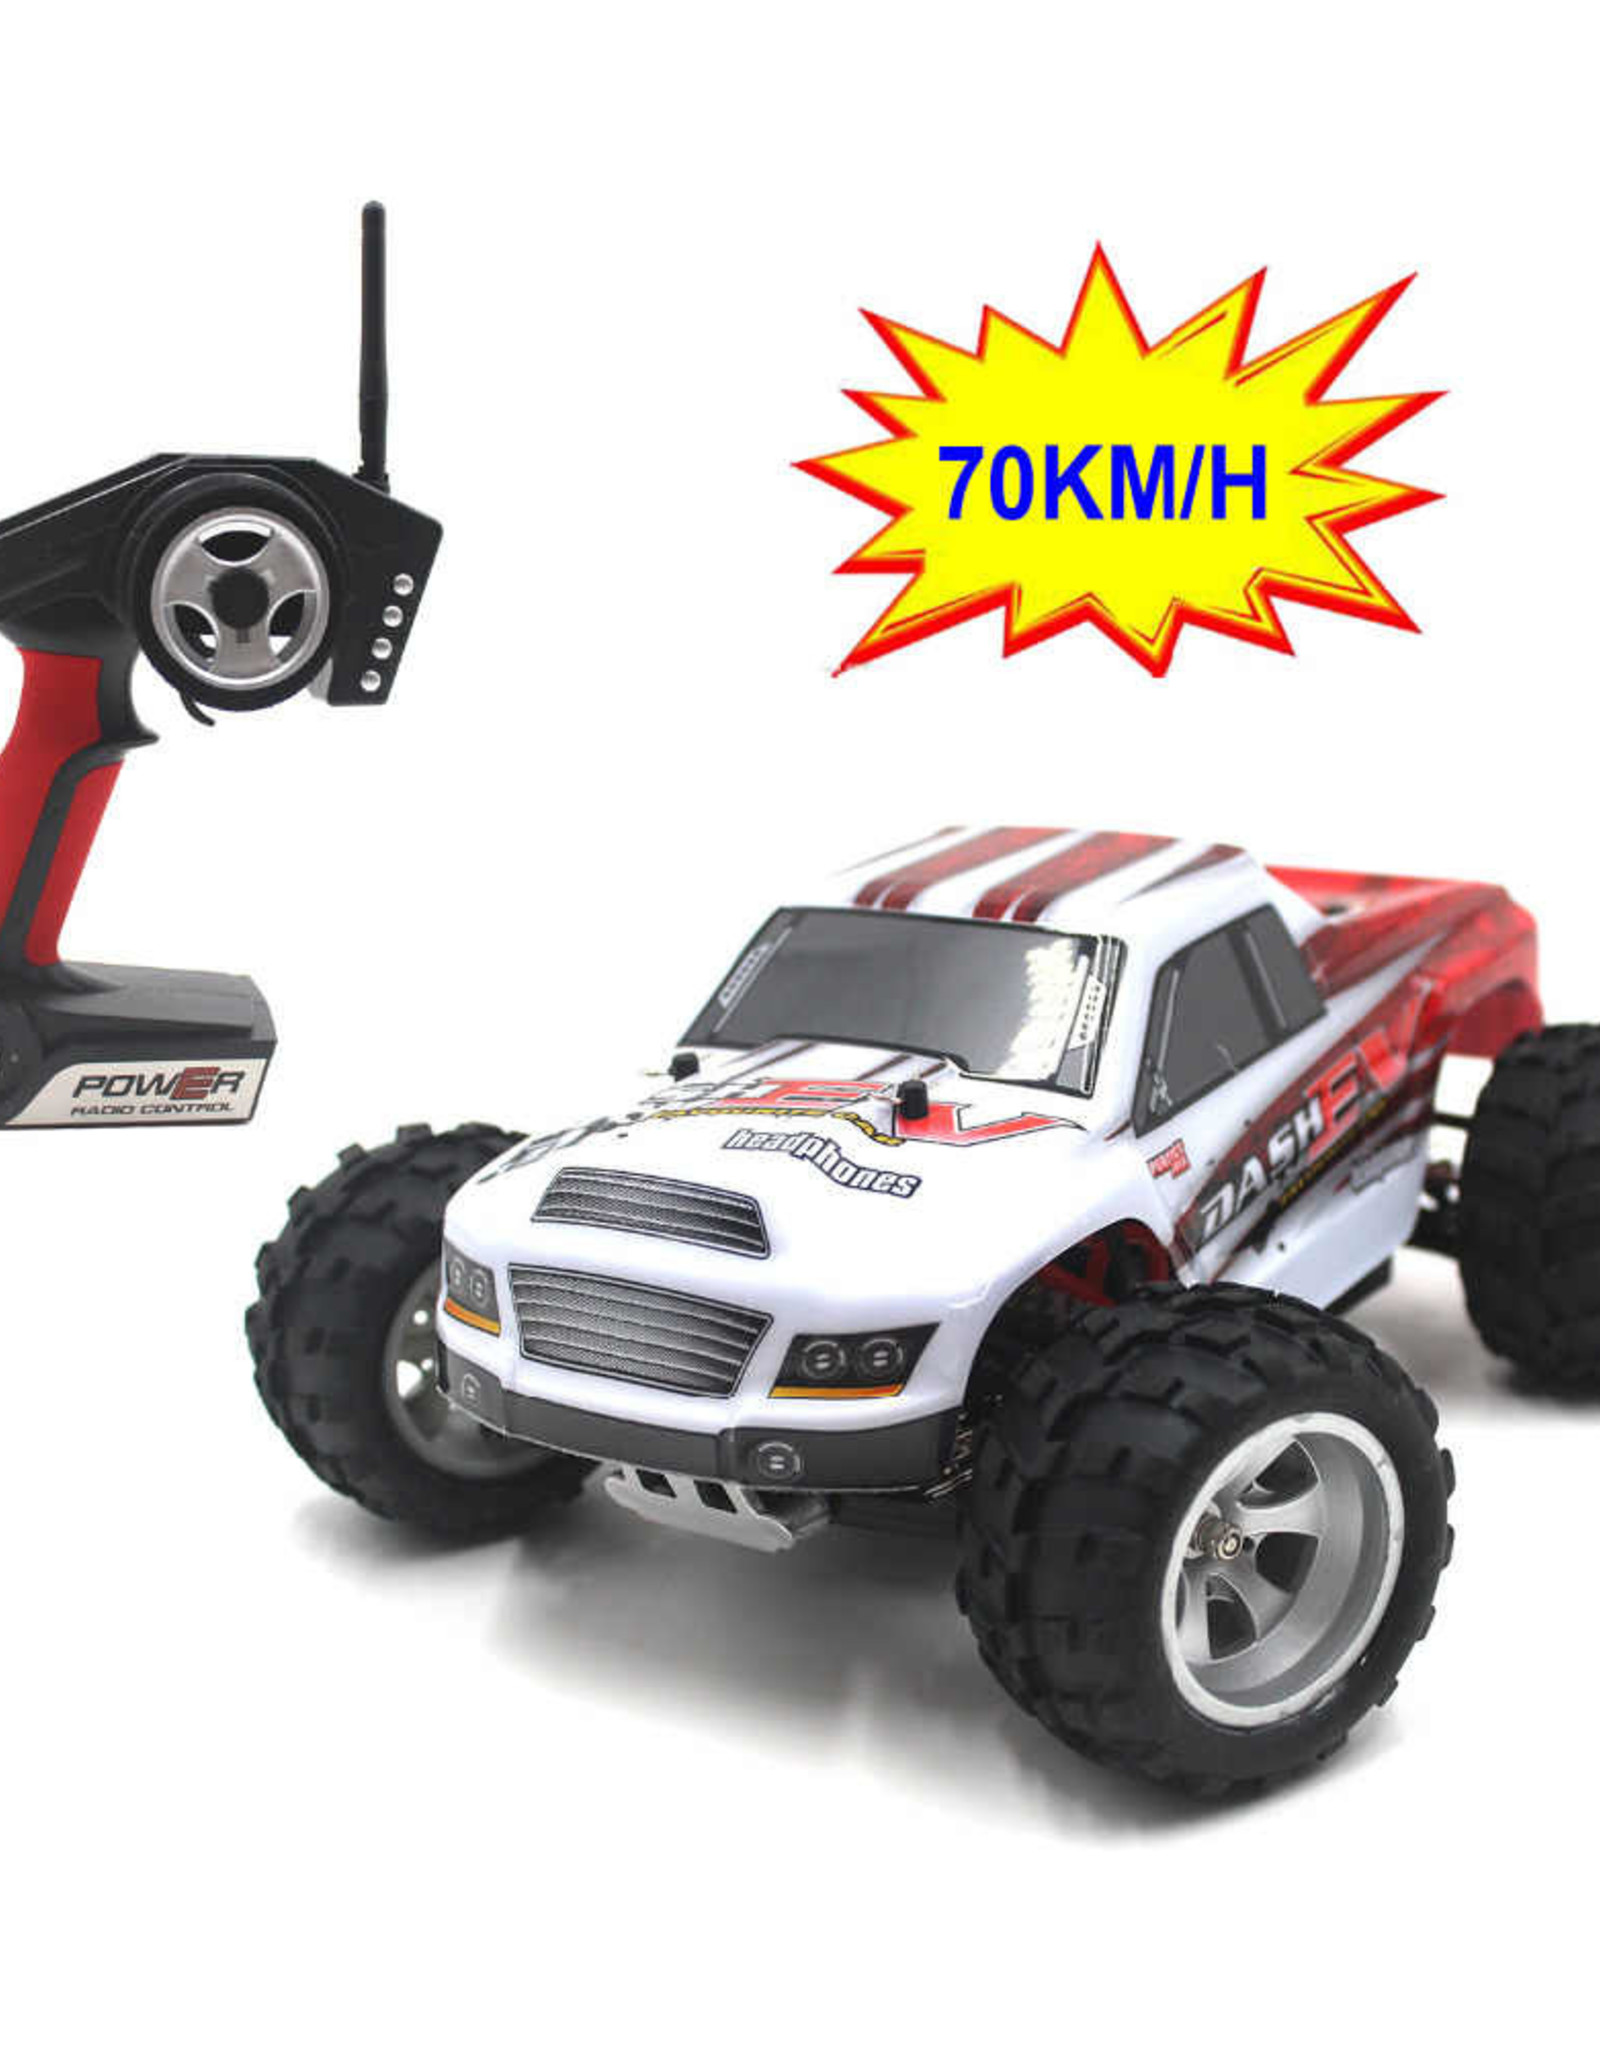 WL TOYS WL toys A979-B 2.4G 1:18 70KM/H High Speed Monster Truck Rc Car Red/White